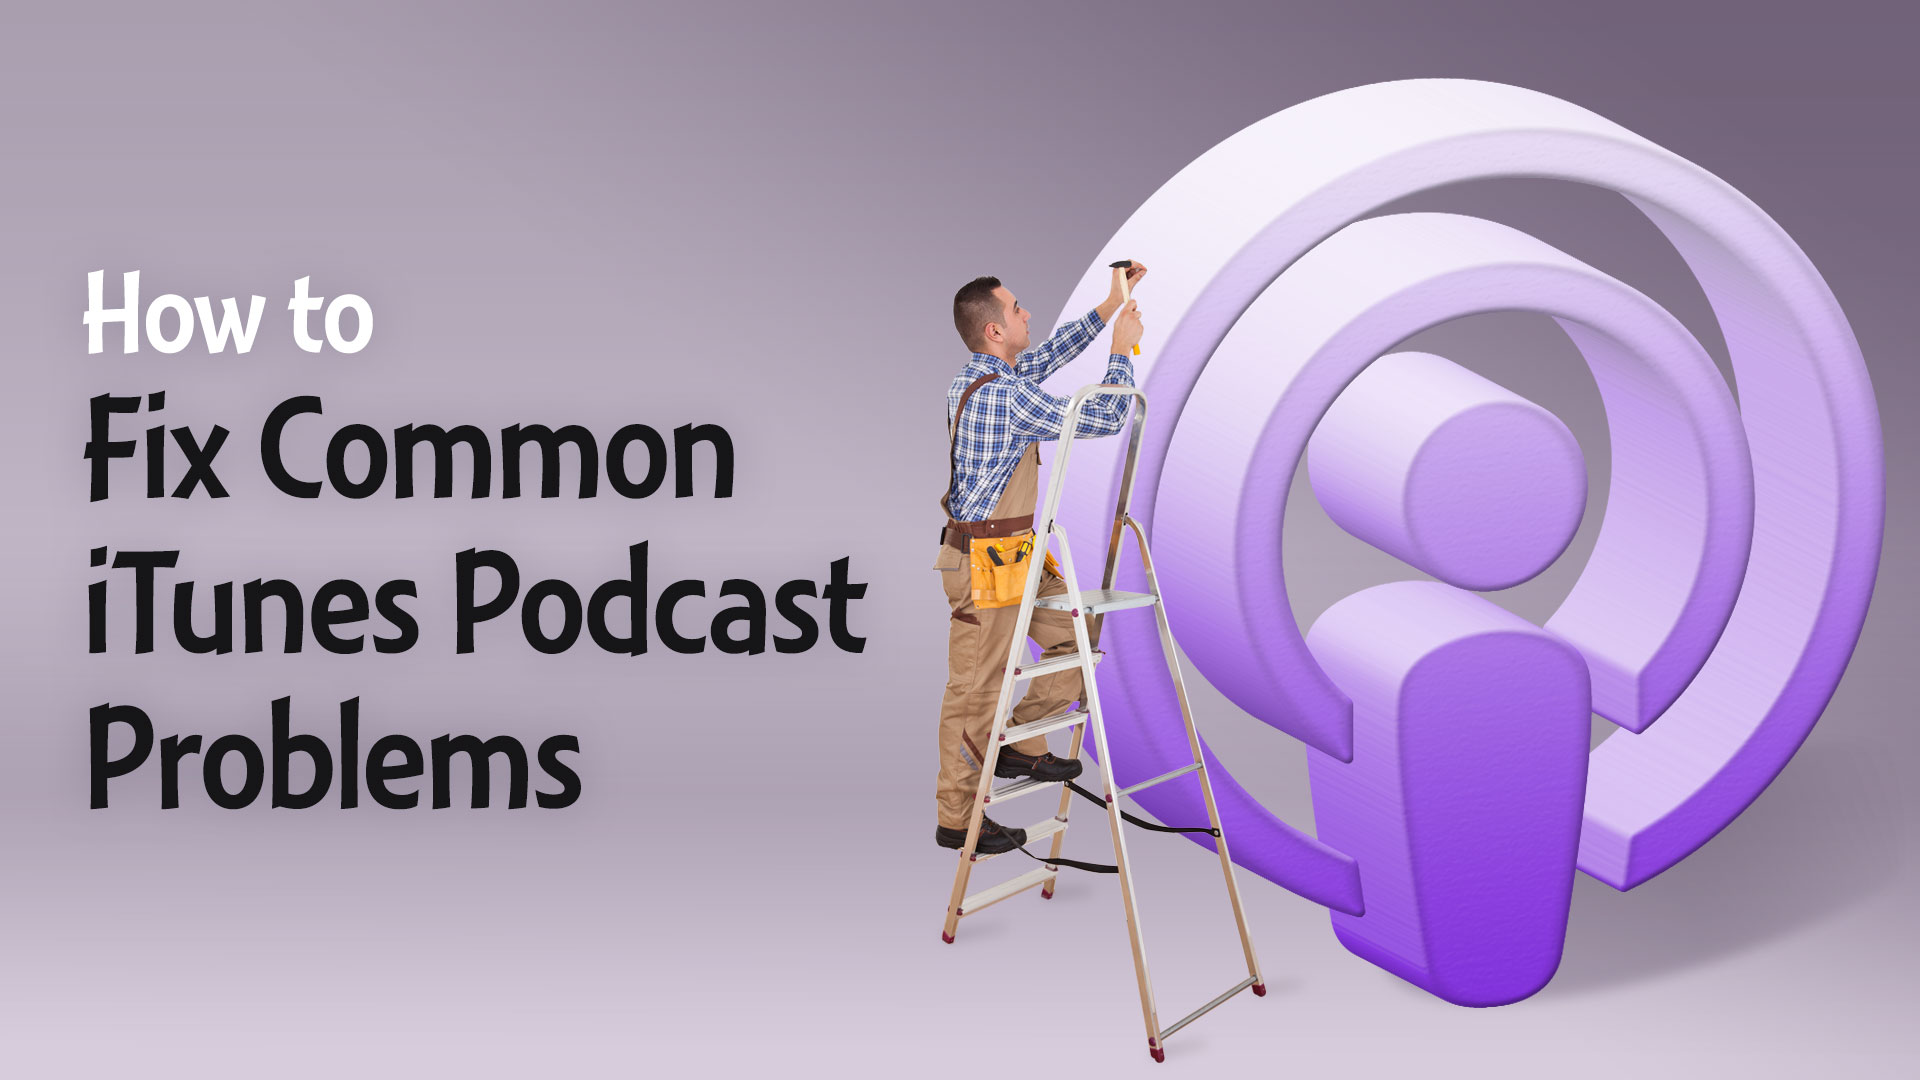 How to Fix Common iTunes Podcast Problems